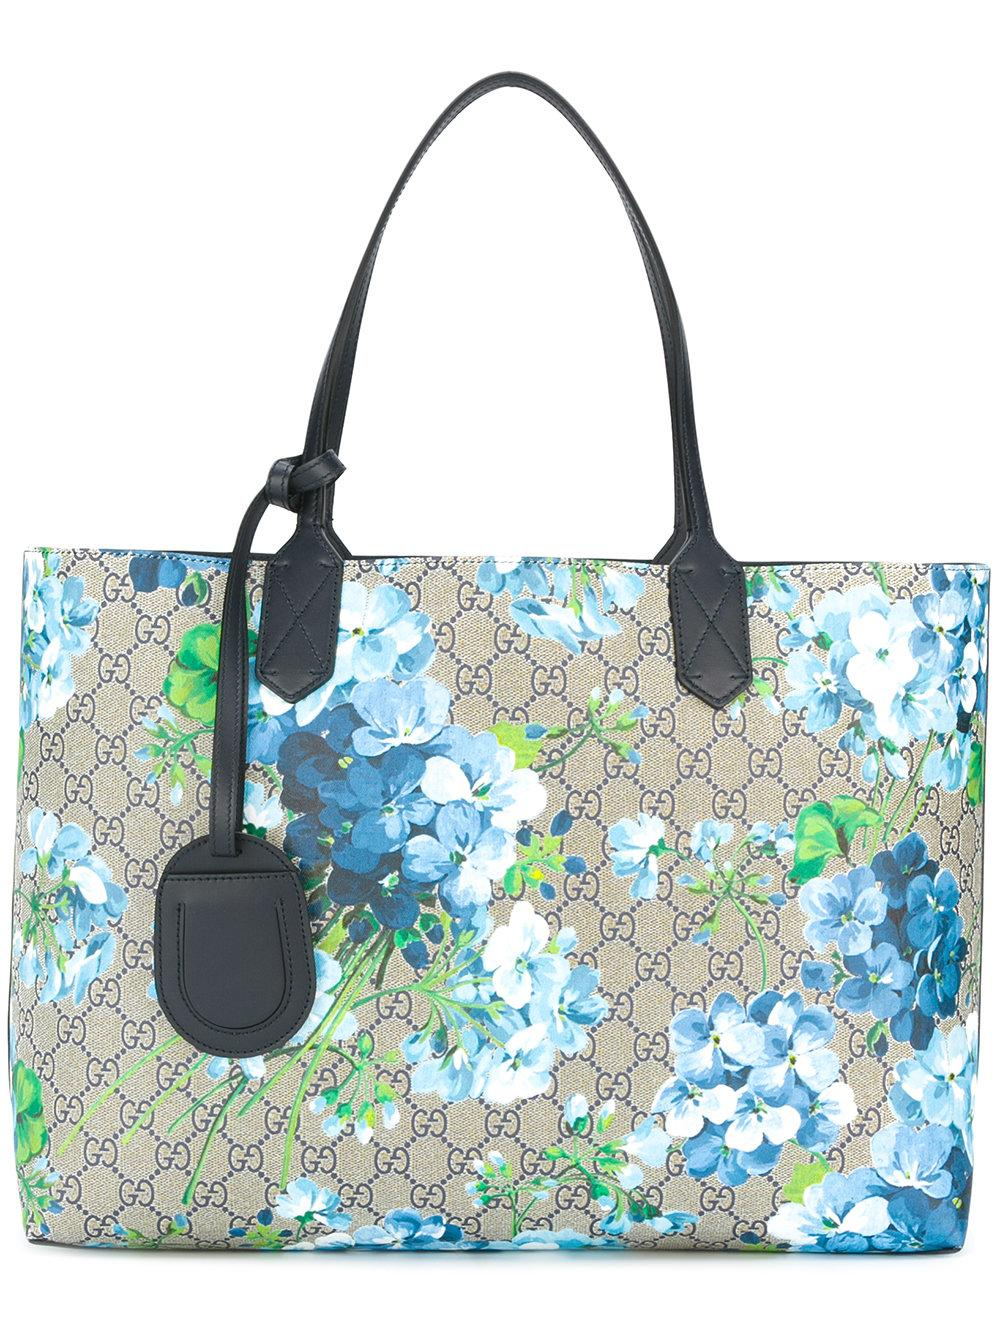 Gucci Reversible Gg Blooms Shopping Tote in Blue | Lyst